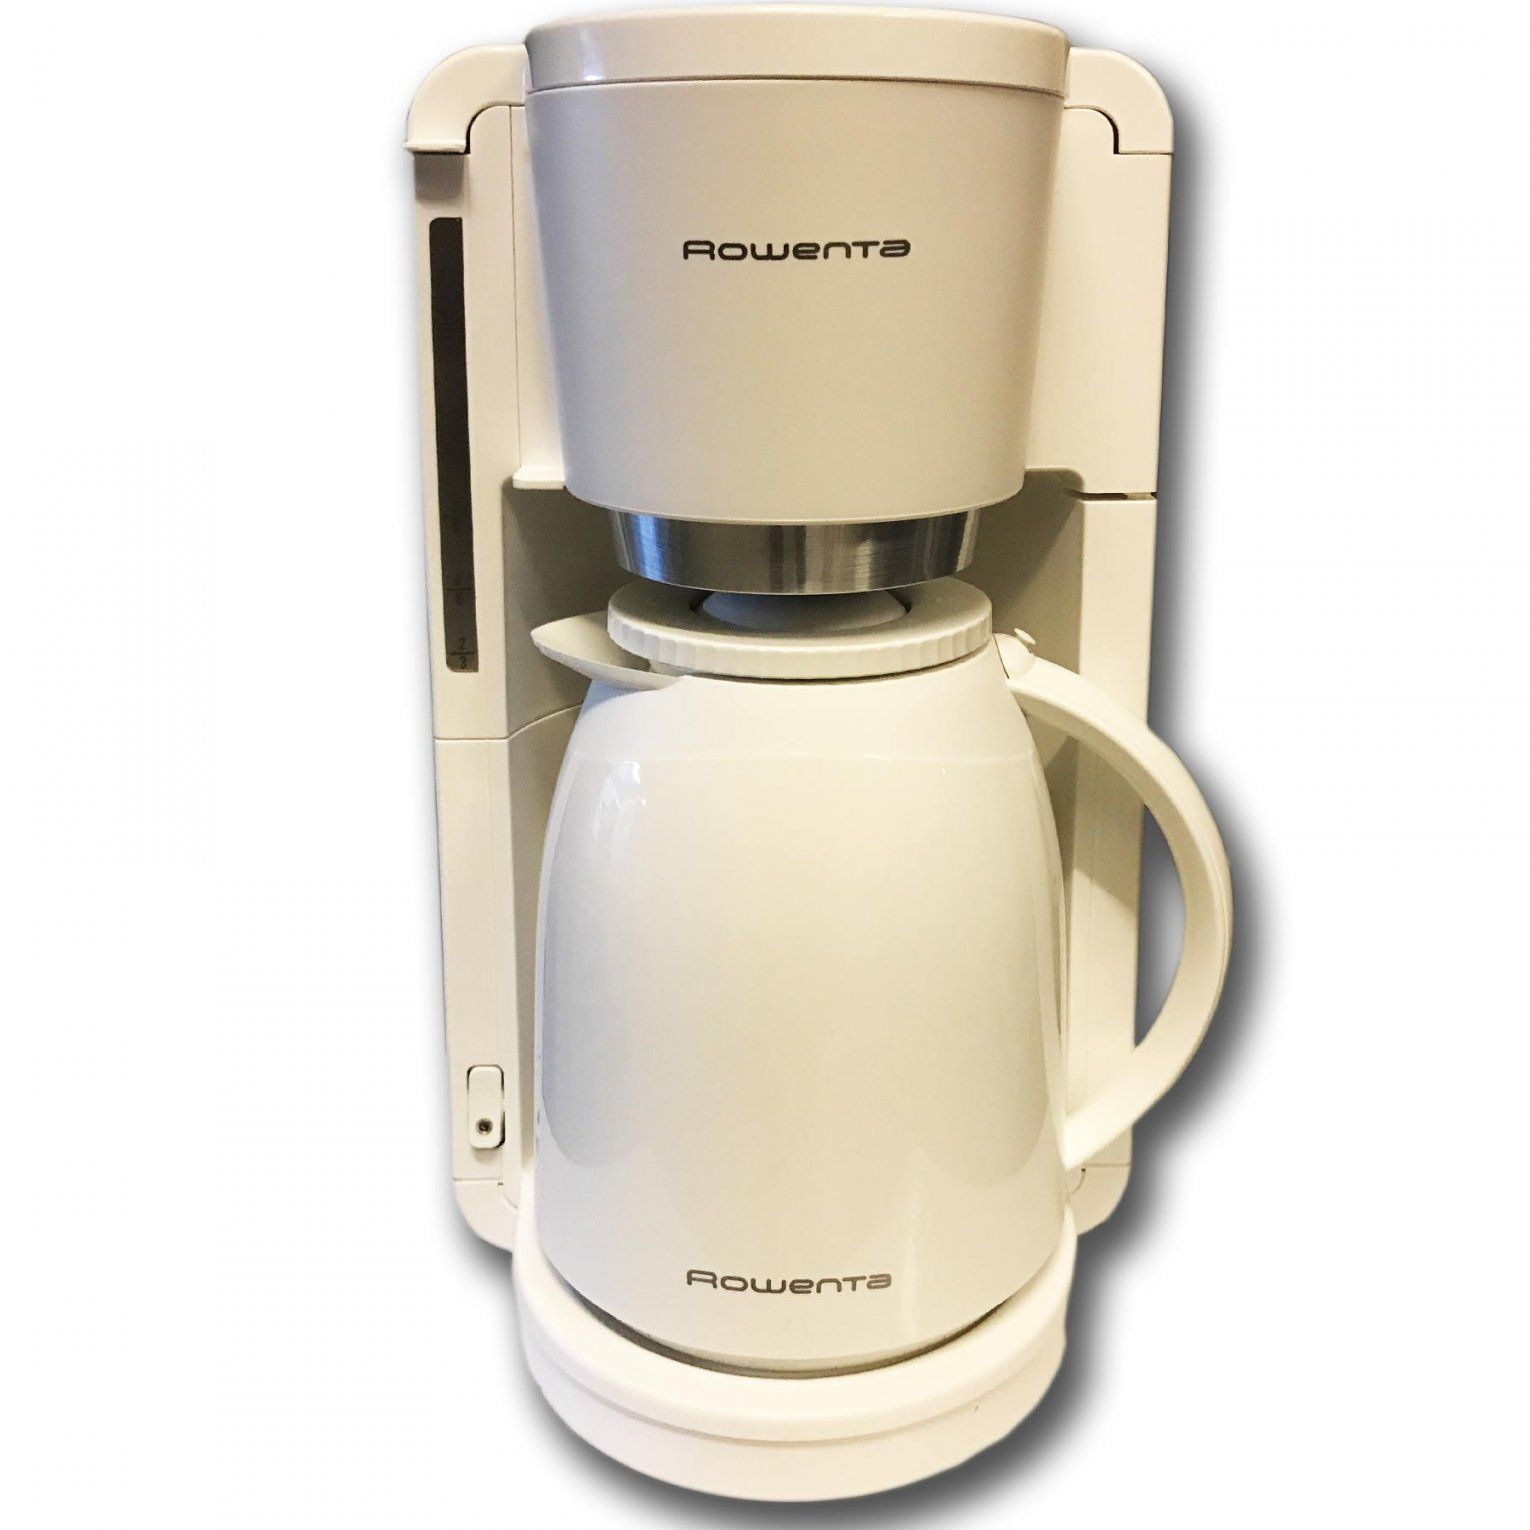 Kaffeemaschine Kaffeeautomat Rowenta Ct 3801 Filter 12 Tassen von Braun Kaffeemaschine Mit Thermoskanne Photo